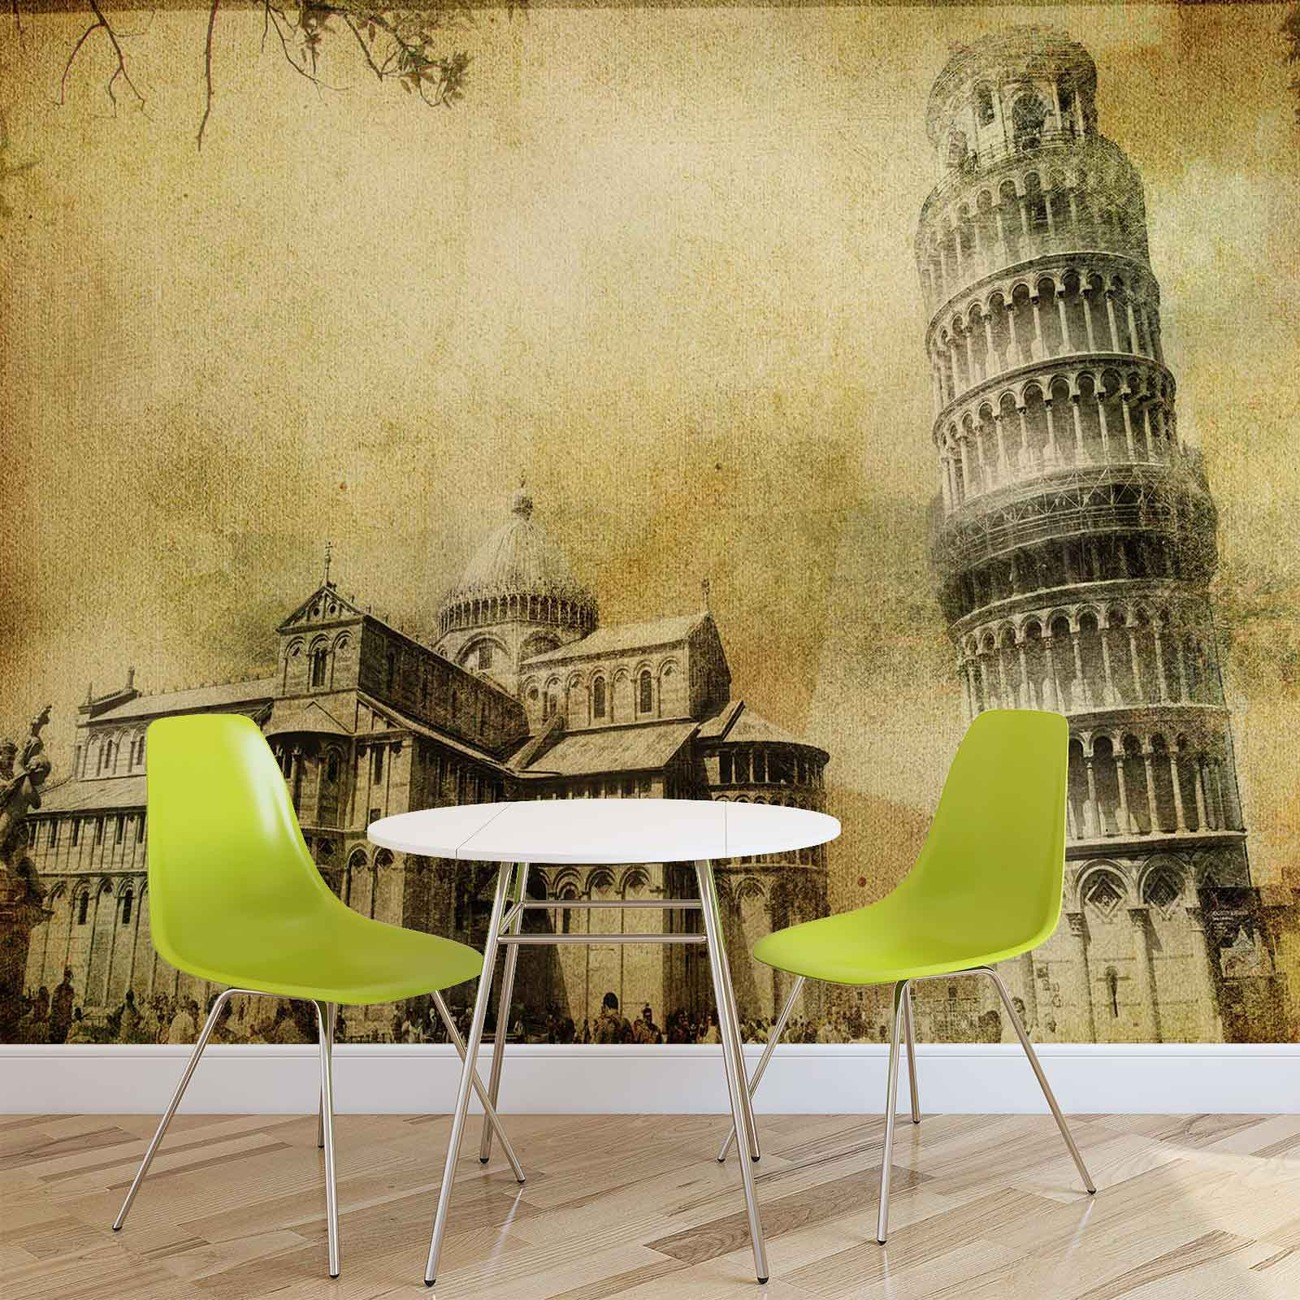 Retro & Vintage - Wall Murals Wallpaper Murals | Buy Online at ...